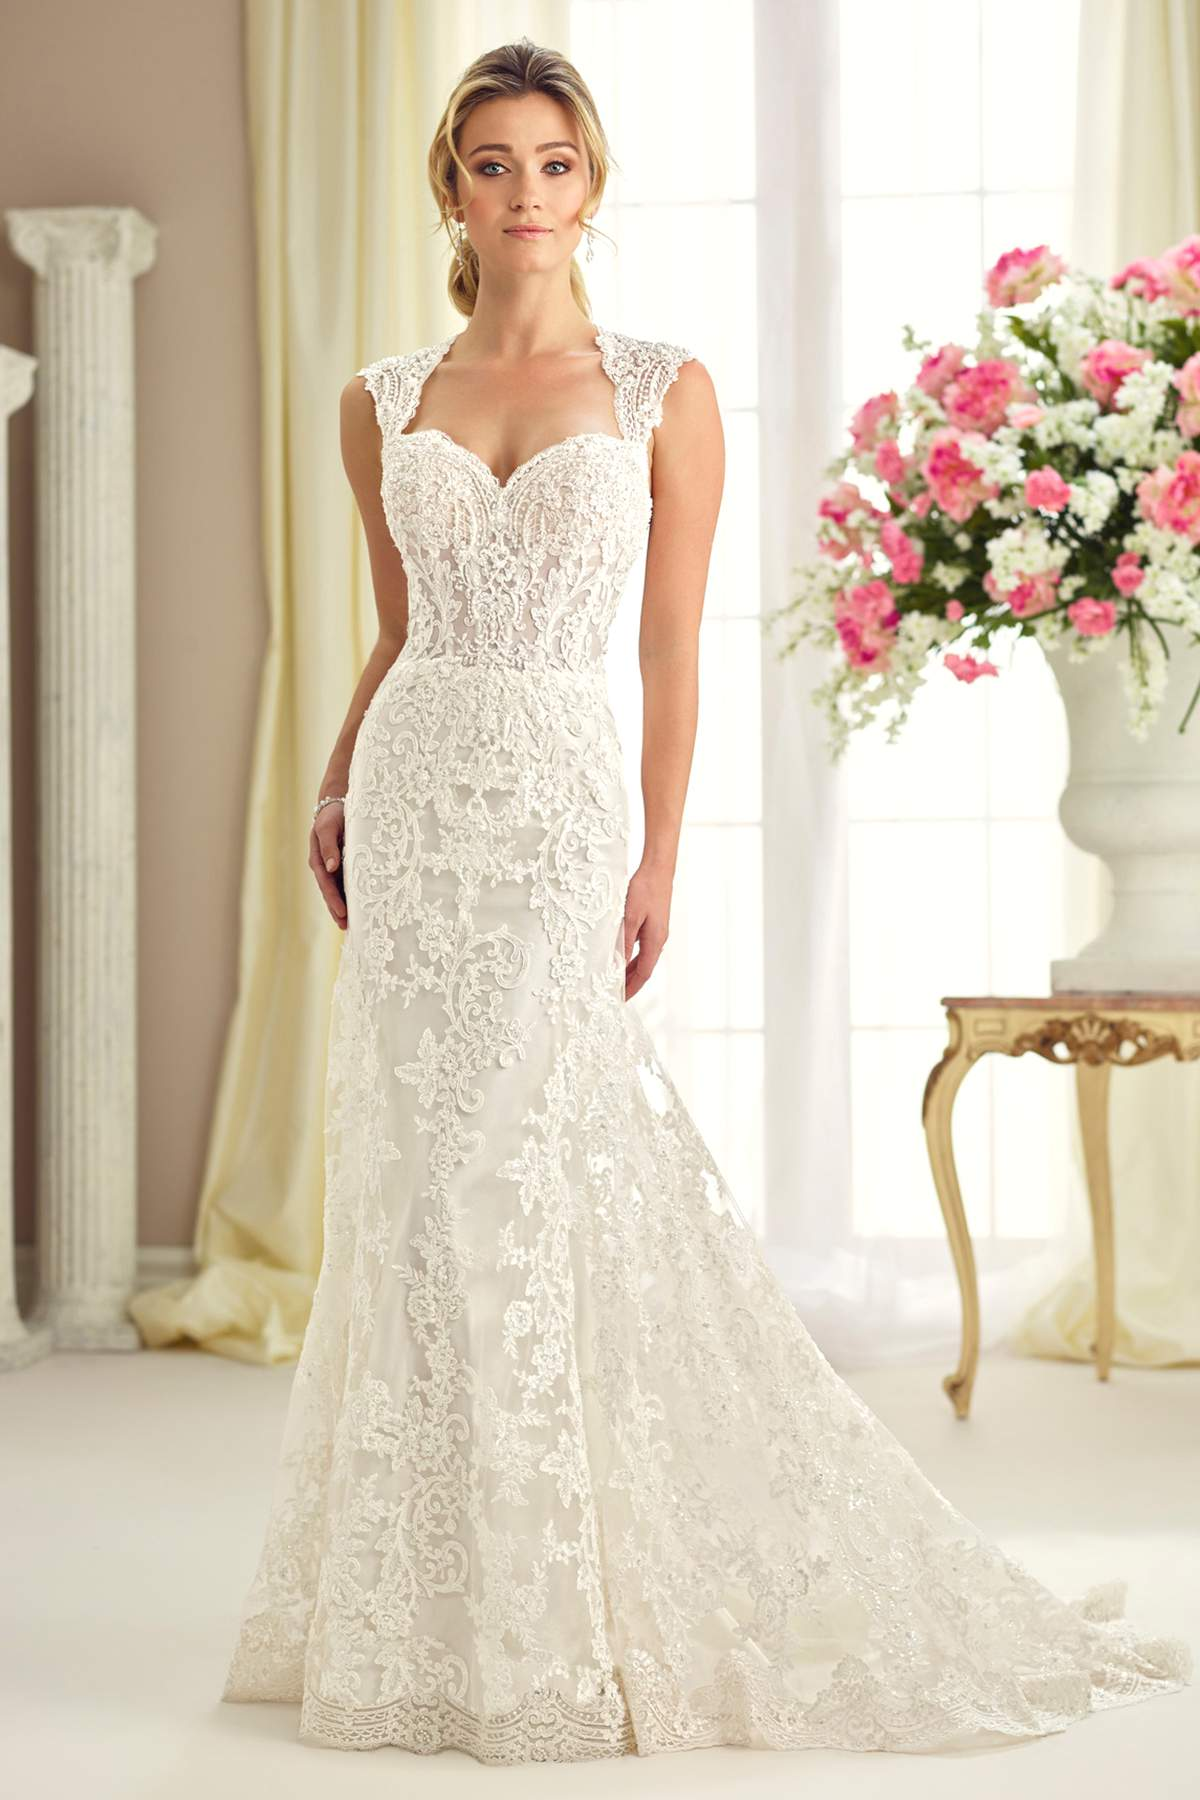 c42dfe3e3d Style 217116 by Enchanting by Mon Cheri - Find Your Dream Dress